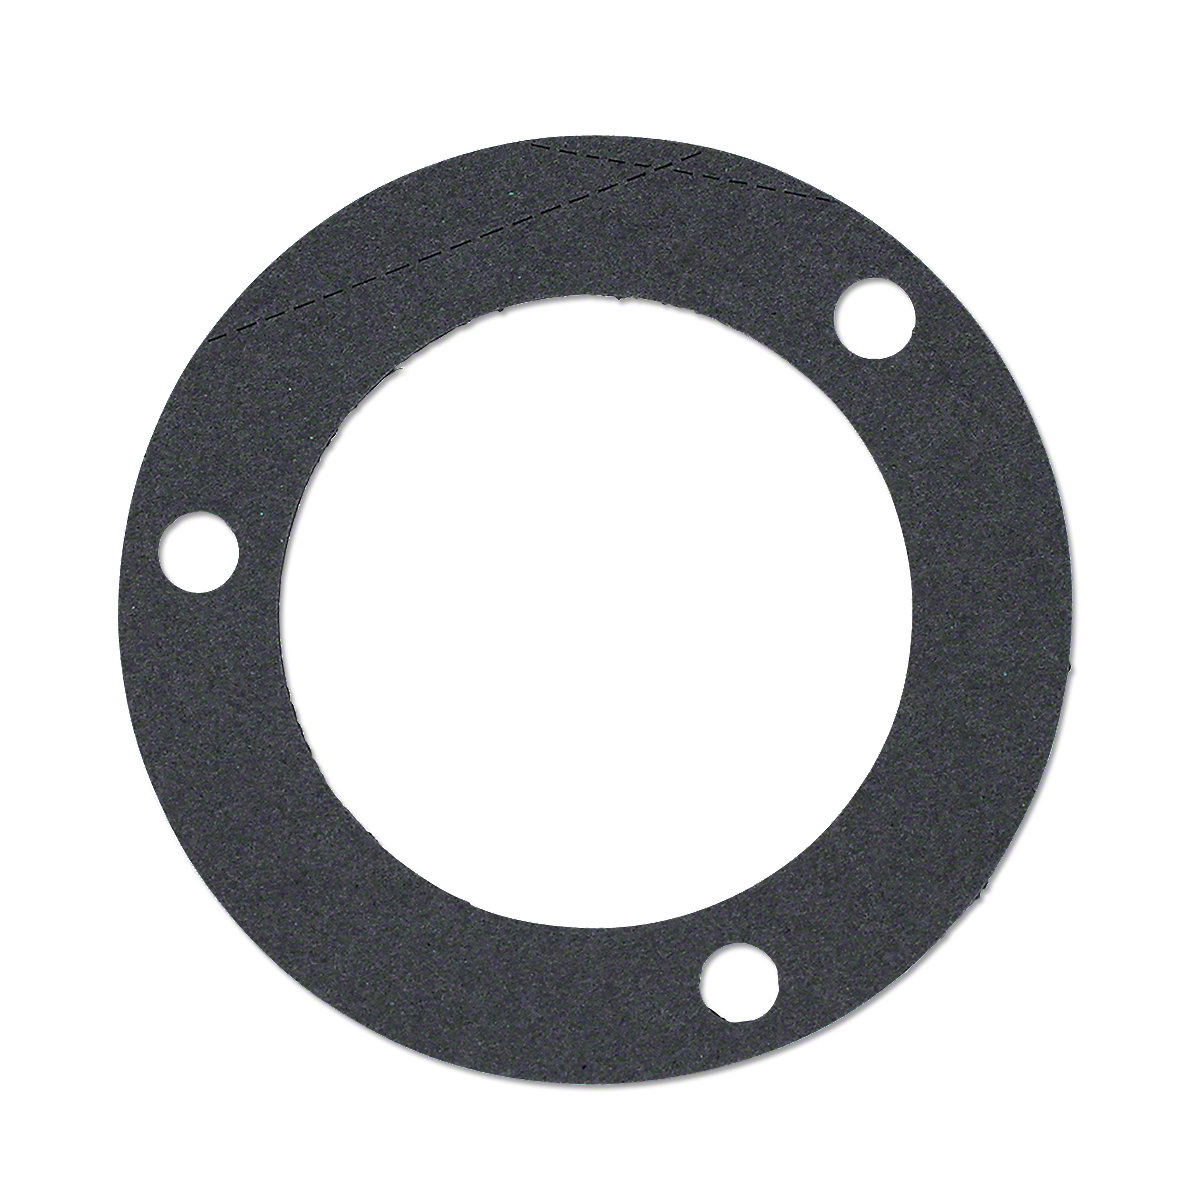 Water Pump To Support Casting Gasket For Massey Ferguson: TE20, TO20, TO30.